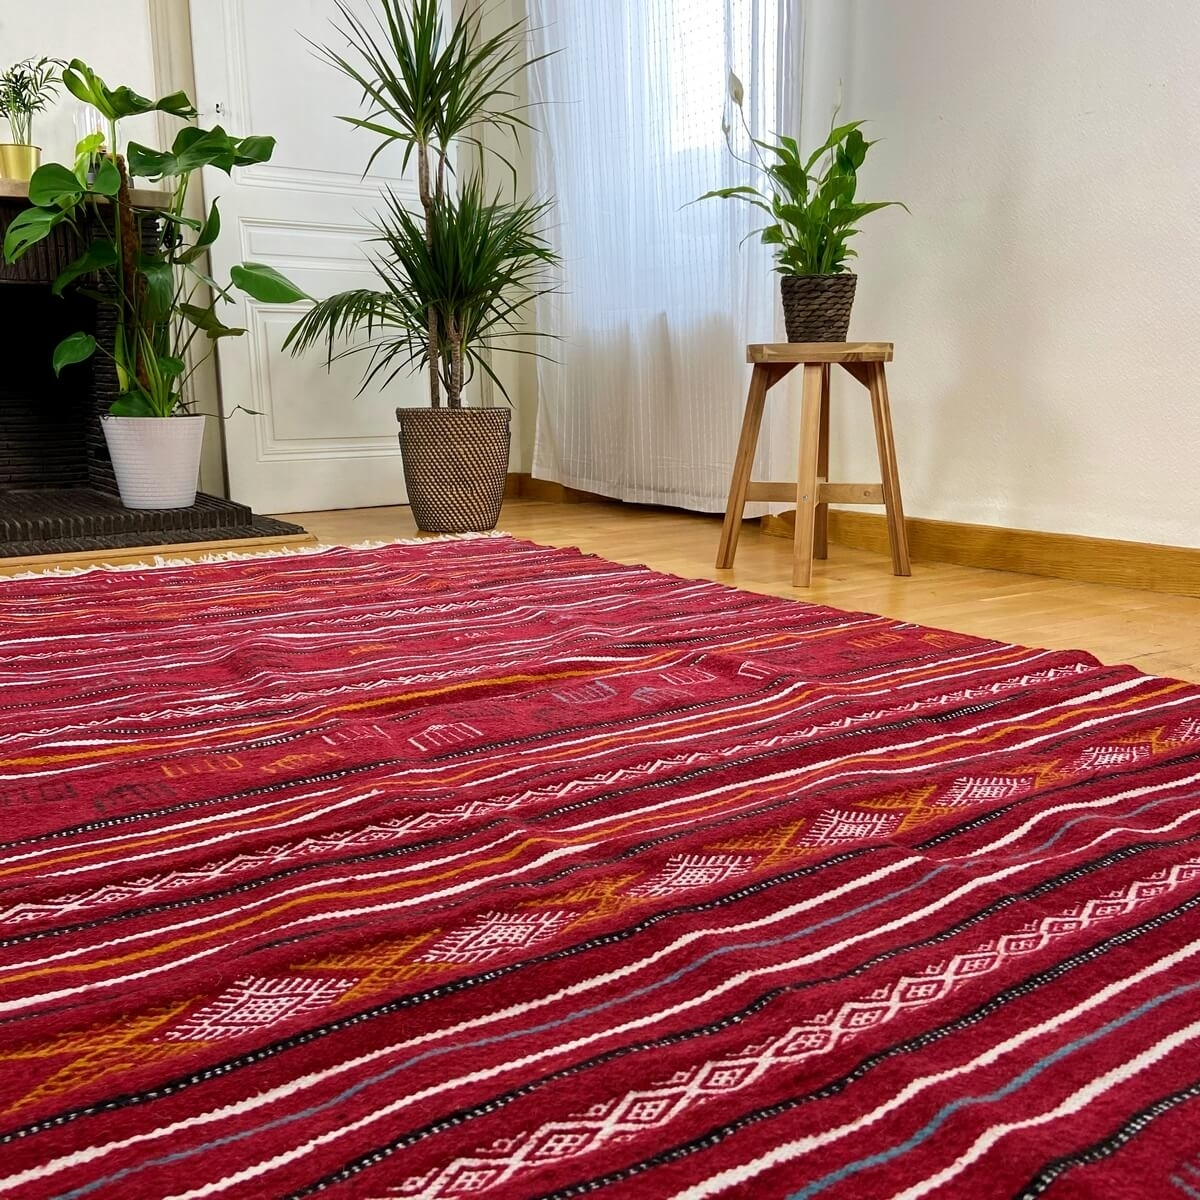 Berber carpet Rug Kilim Luban 140x258 cm Red/Multicolour (Handmade, Wool) Tunisian Rug Kilim style Moroccan rug. Rectangular car